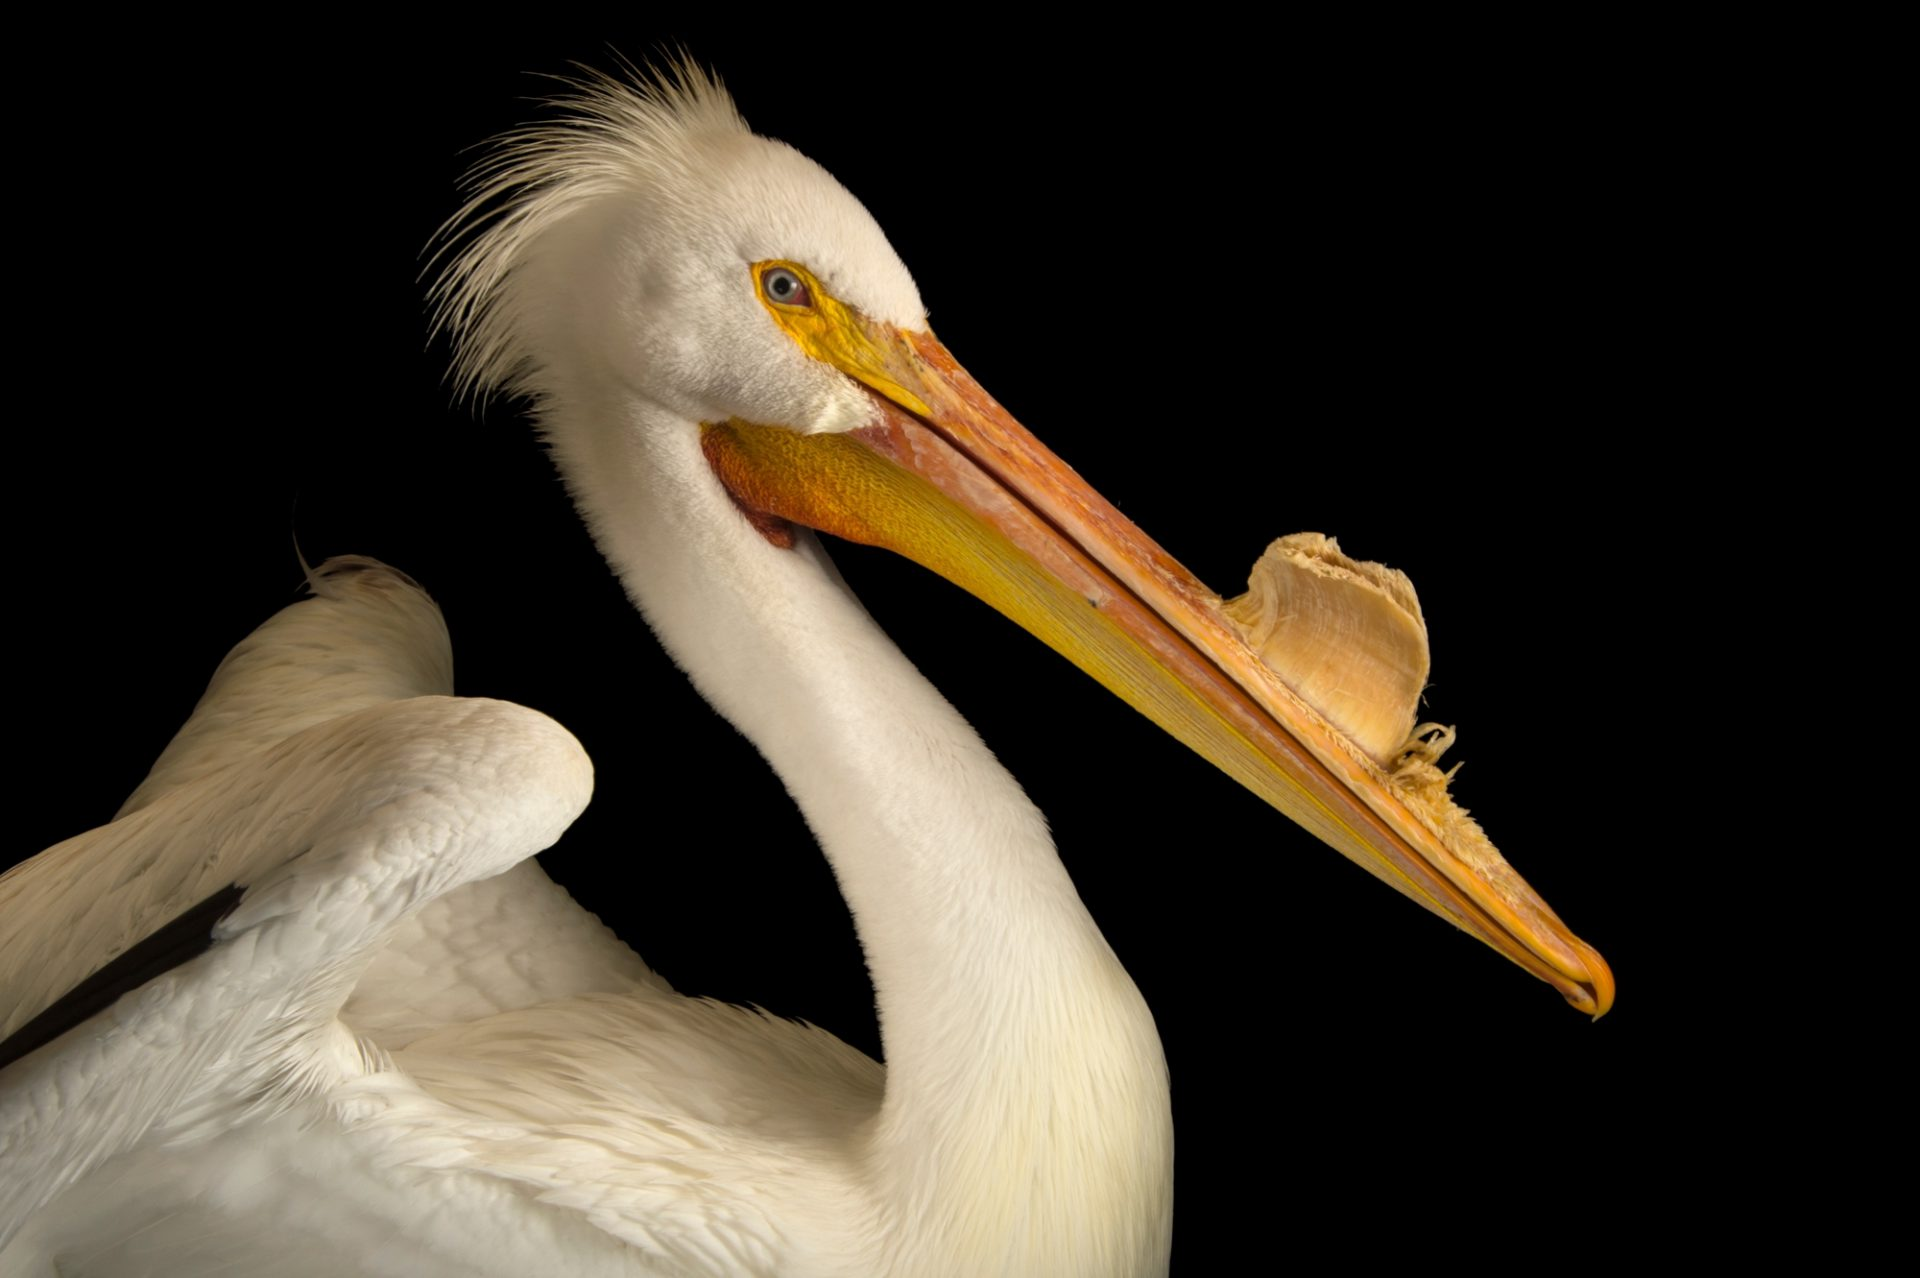 Photo: American white pelican (Pelecanus erythrorhynchos) at Rogers Wildlife Rehabilitation Center.